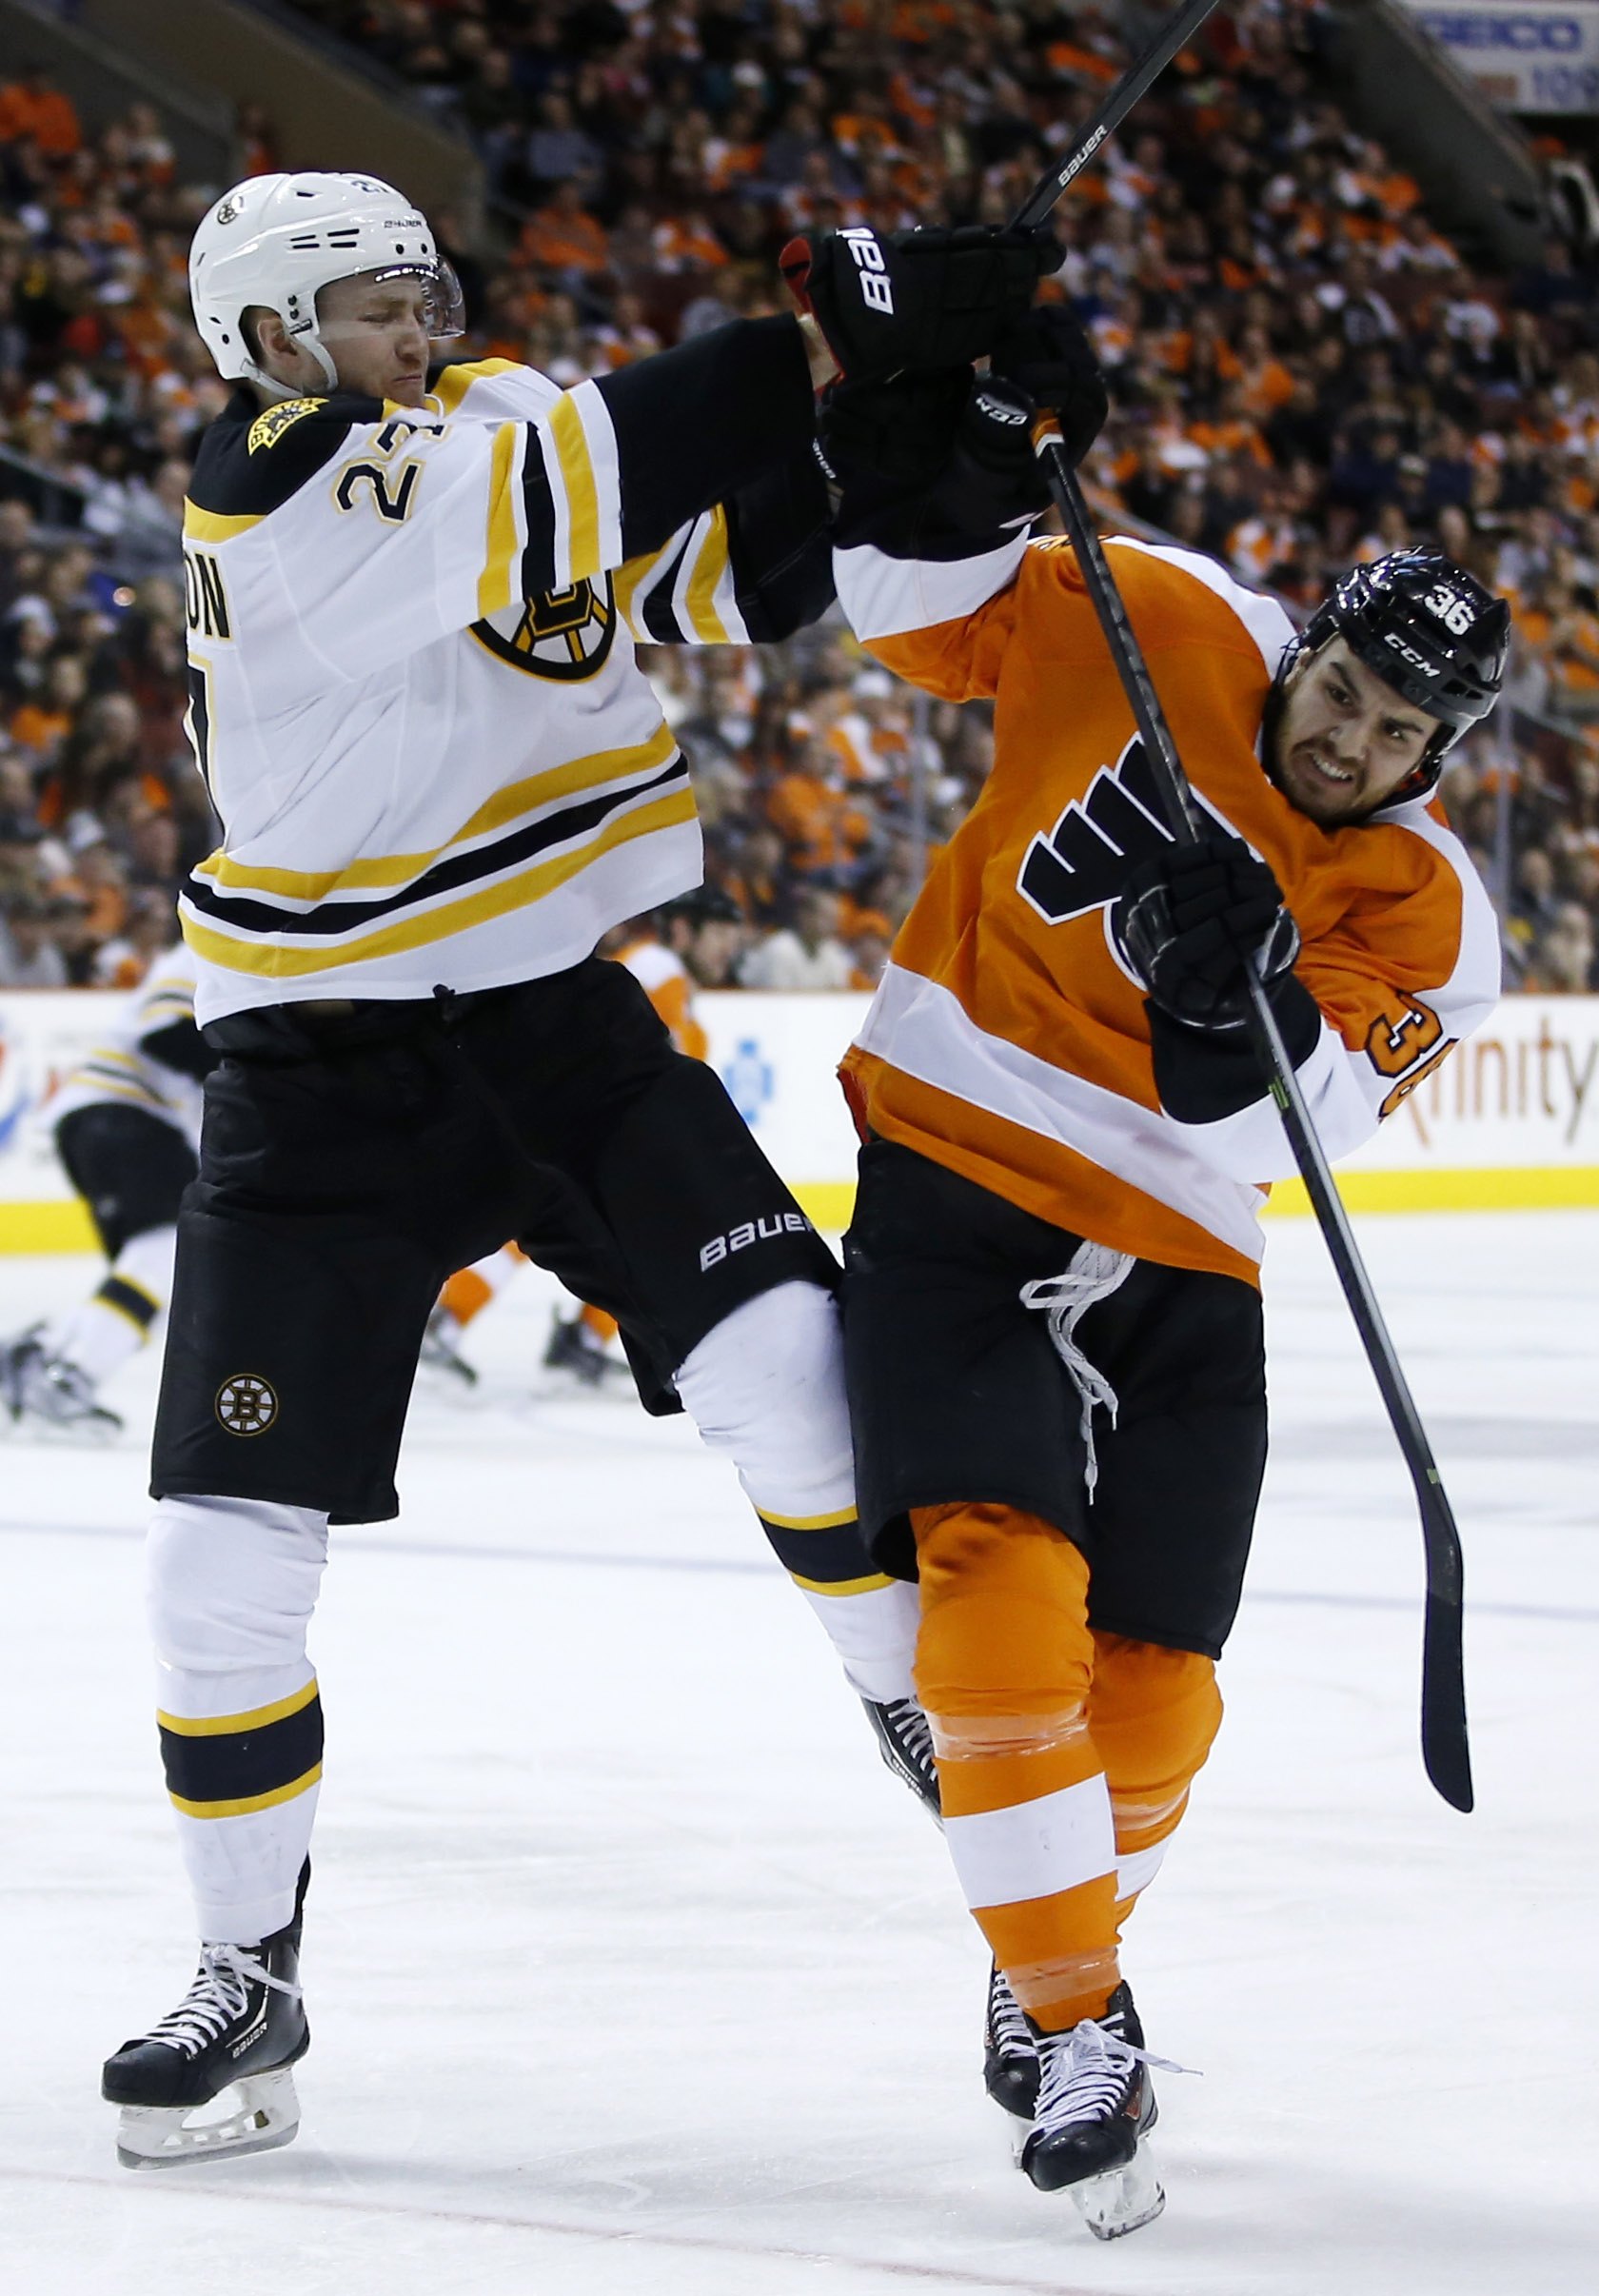 Boston Bruins' Dougie Hamilton, left, and Philadelphia Flyers' Zac Rinaldo collide during the second period of an NHL hockey game on Sunday, March 30, 2014, in Philadelphia